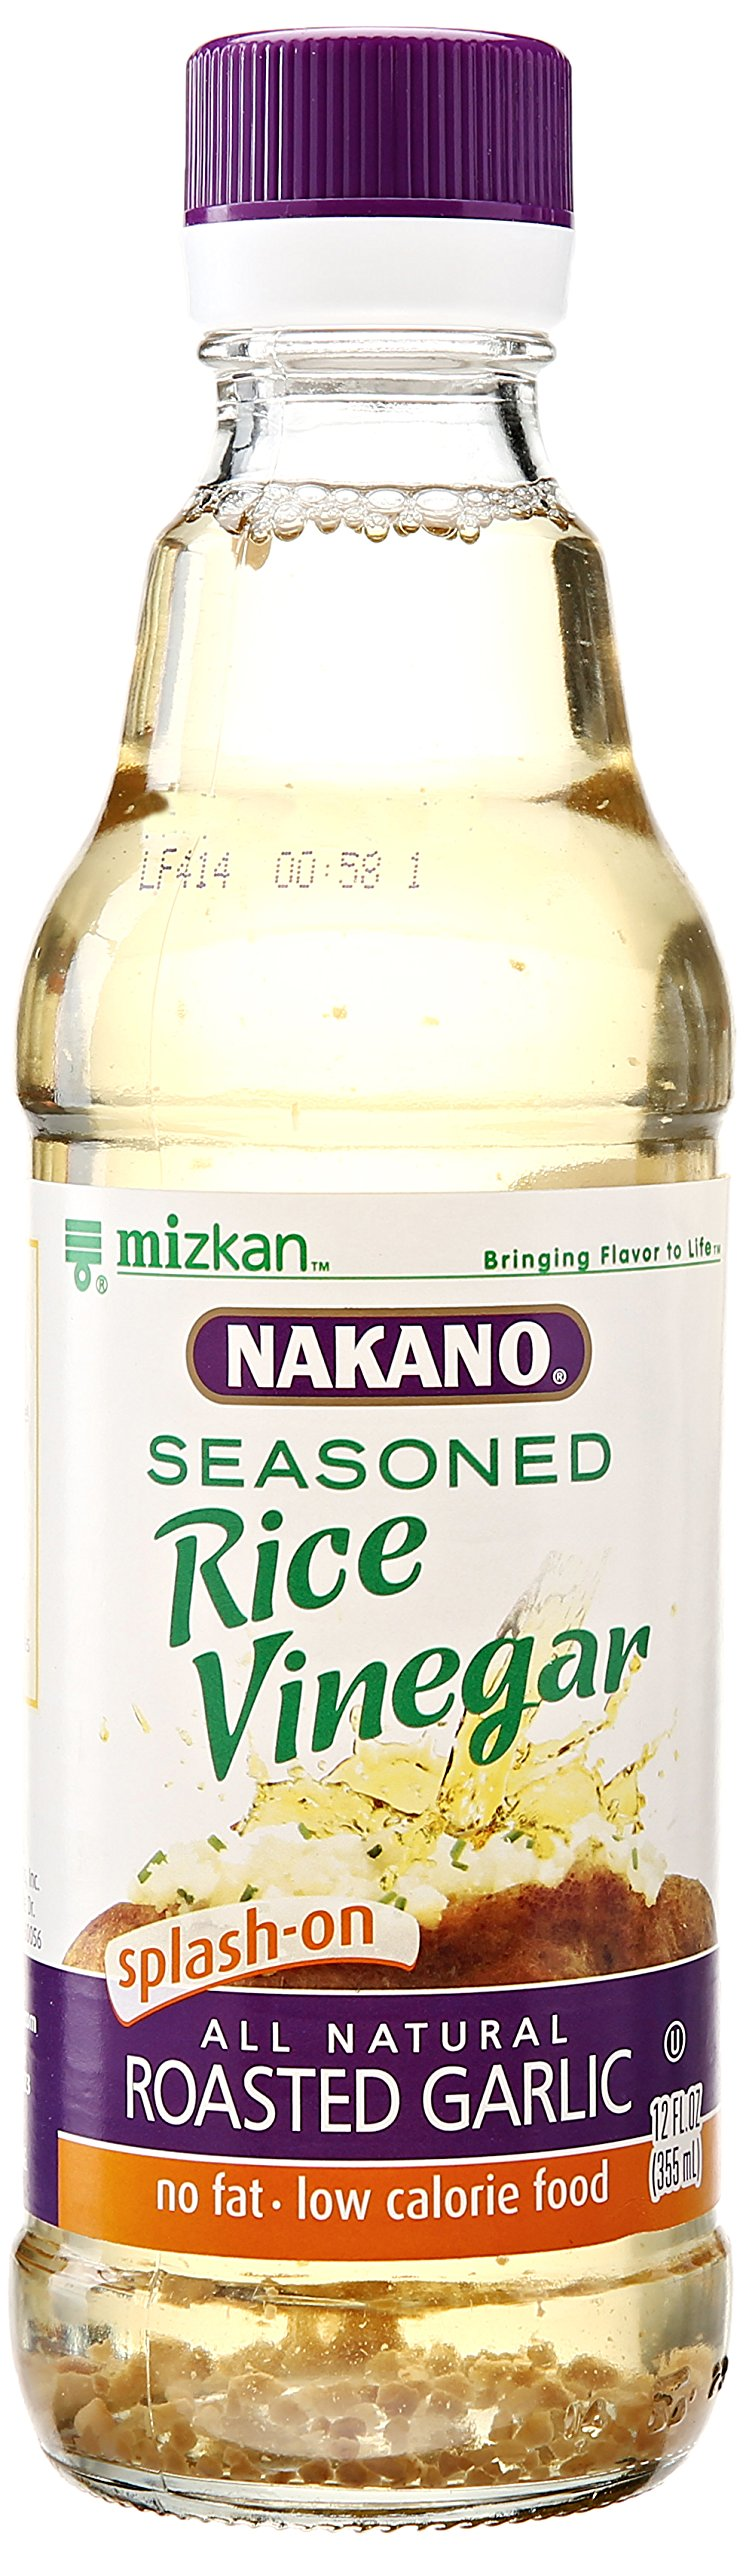 Nakano Seasoned Rice Vinegar with Garlic, 12 oz.